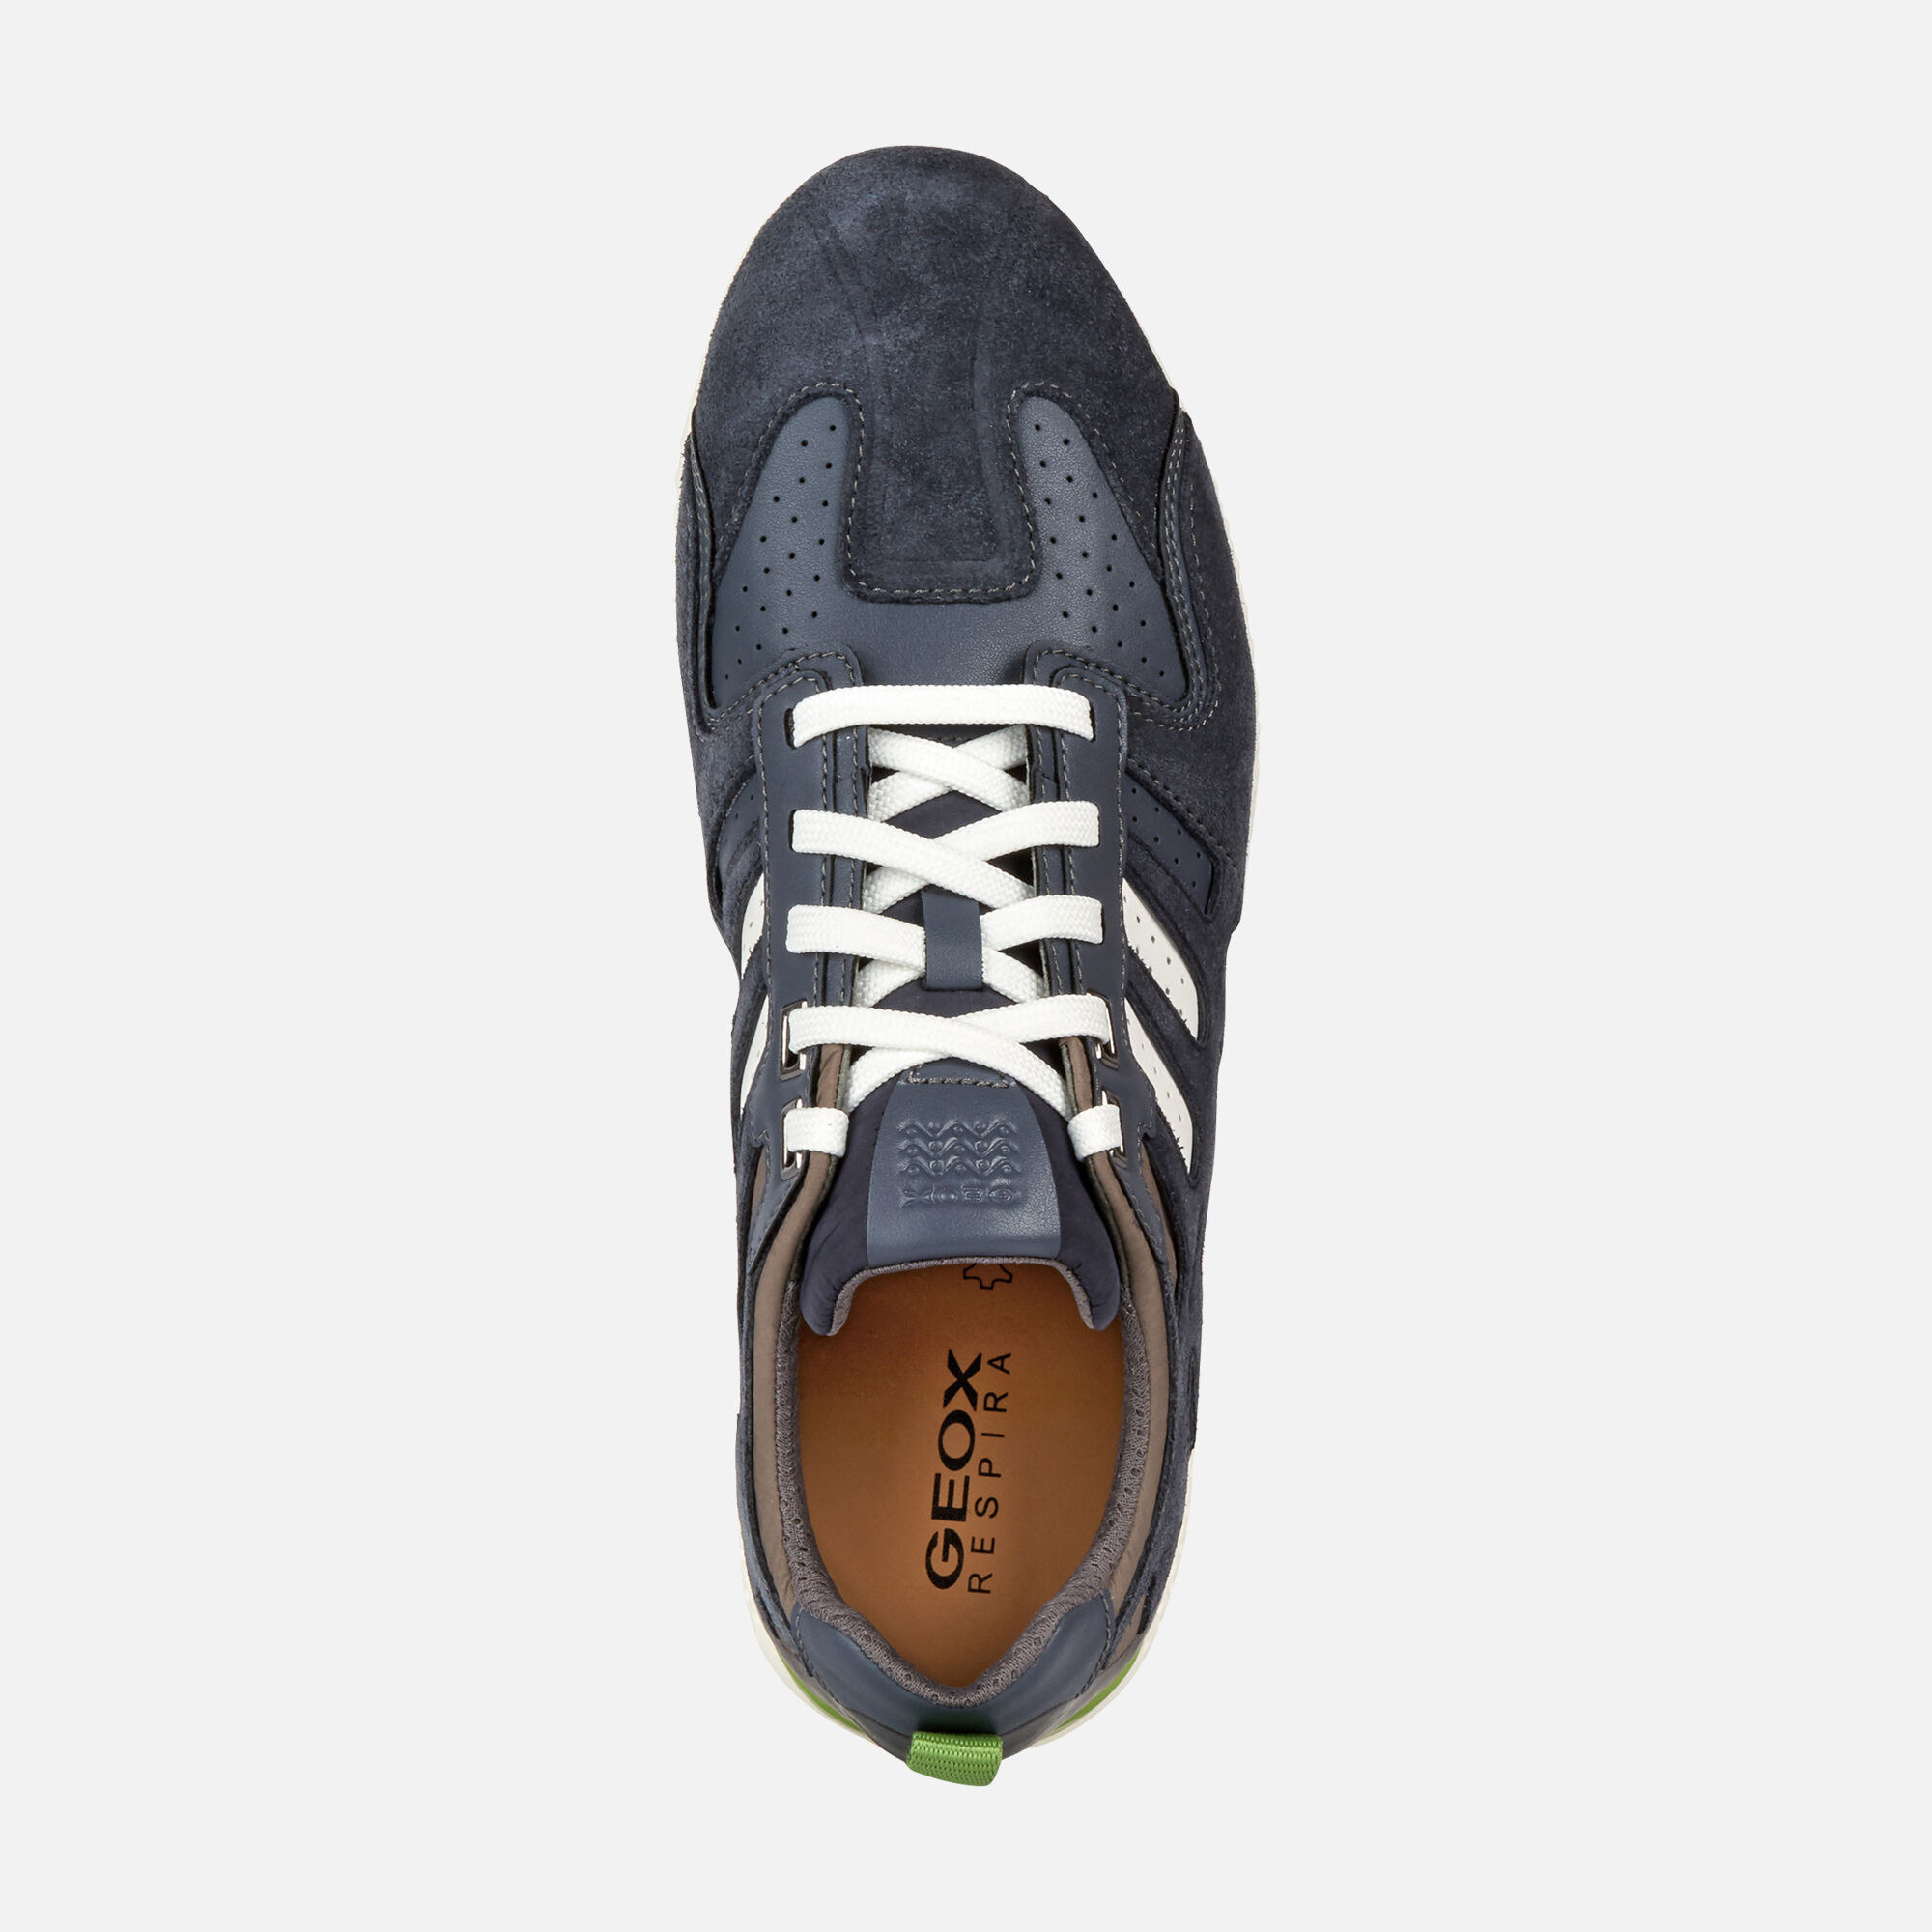 geox respira shoes Online Store, Men Trainers Geox SNAKE